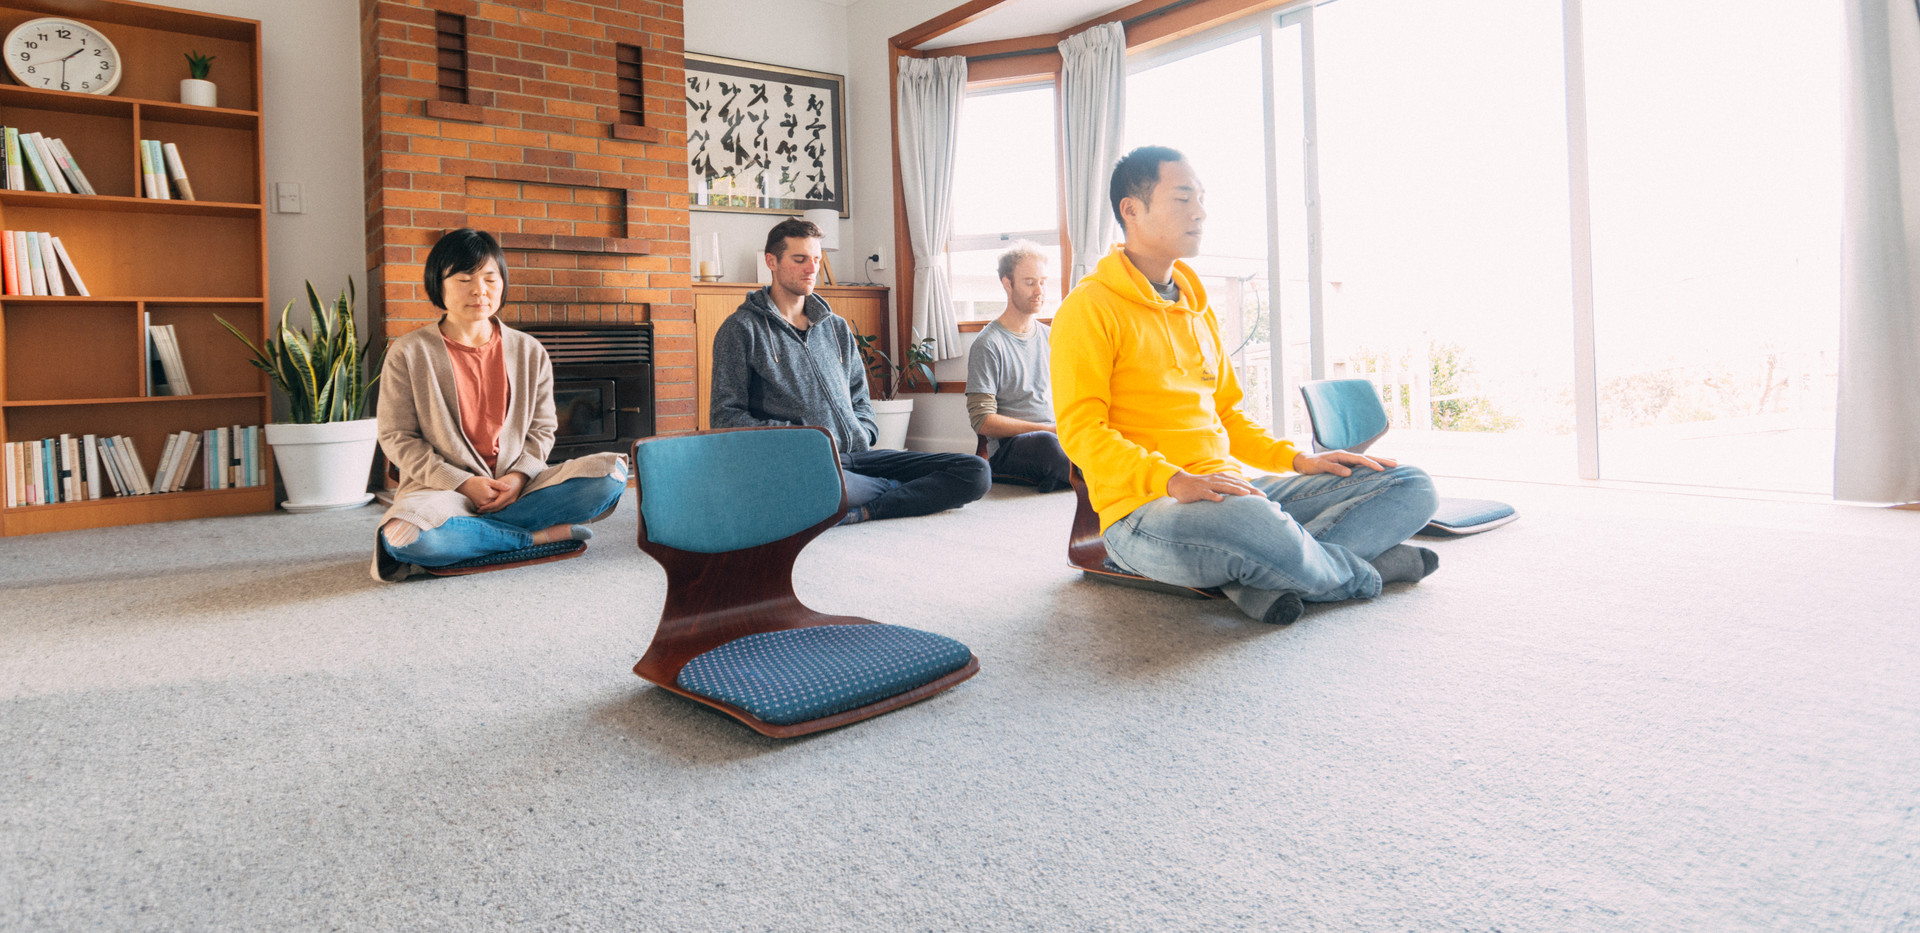 Group_Meditation.jpg